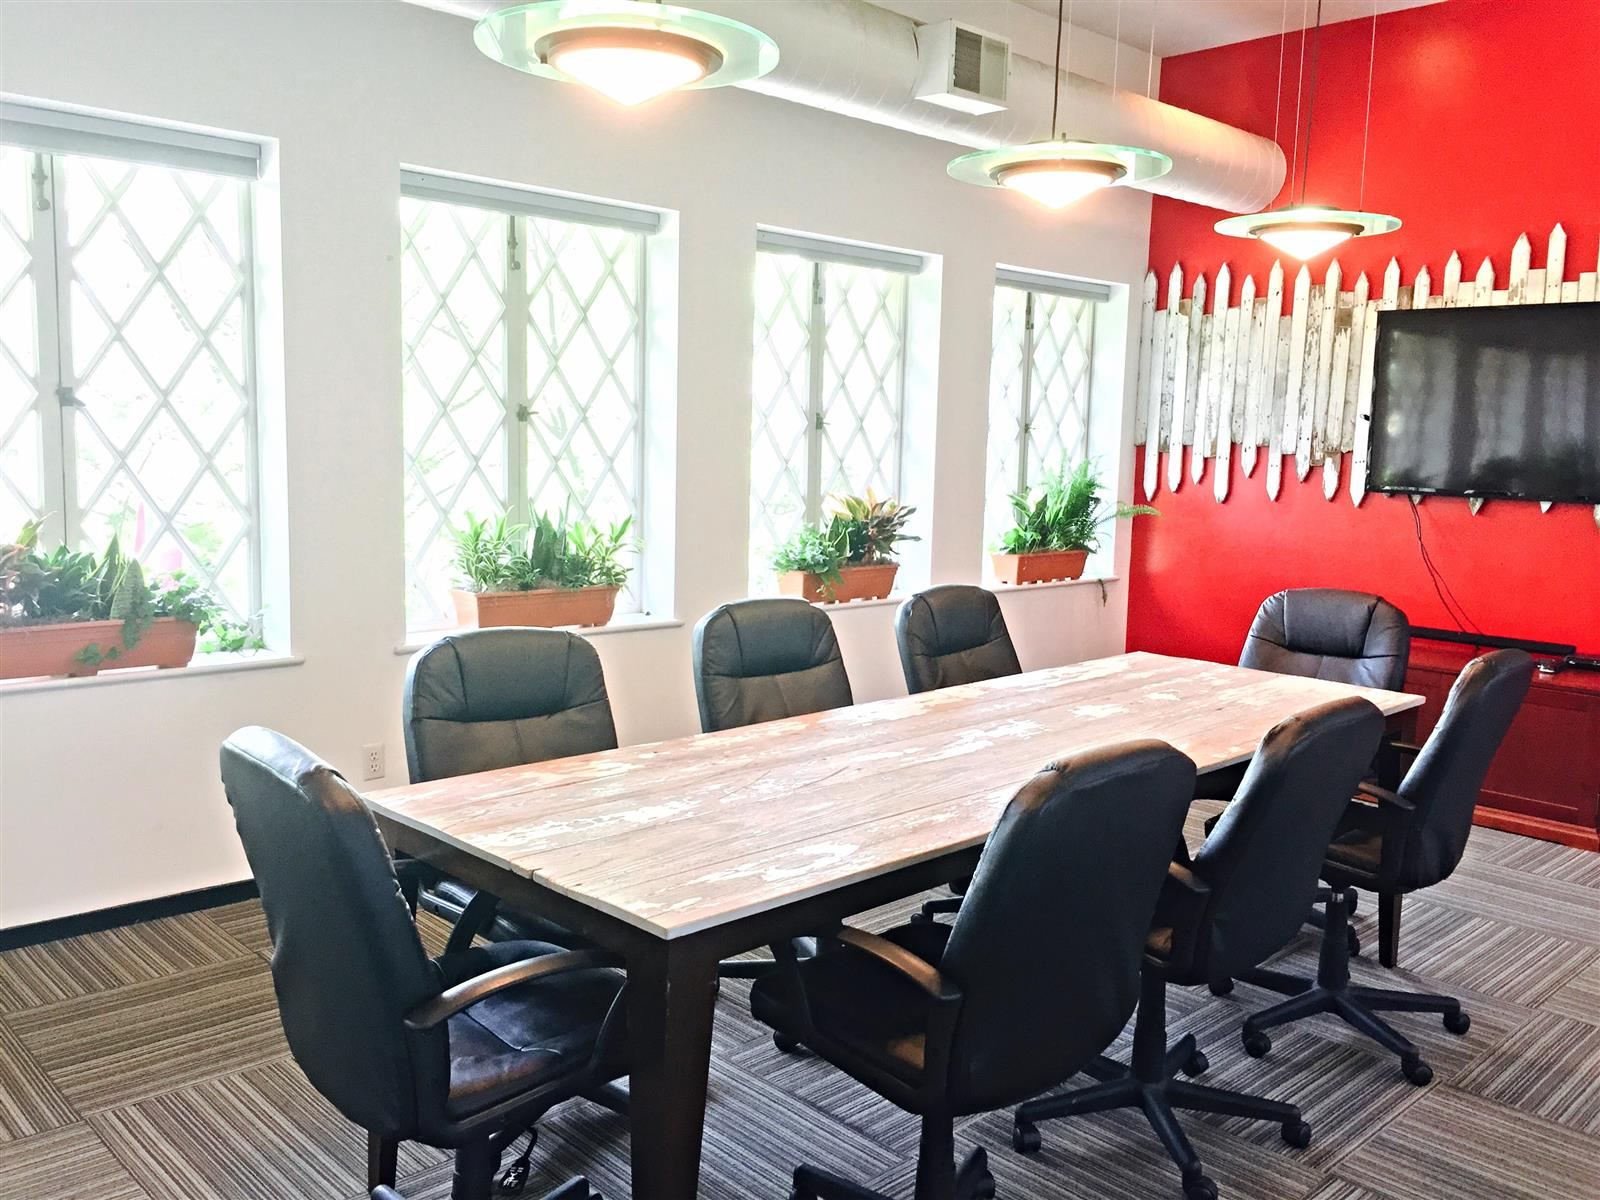 TechArtista Coworking - Board Room